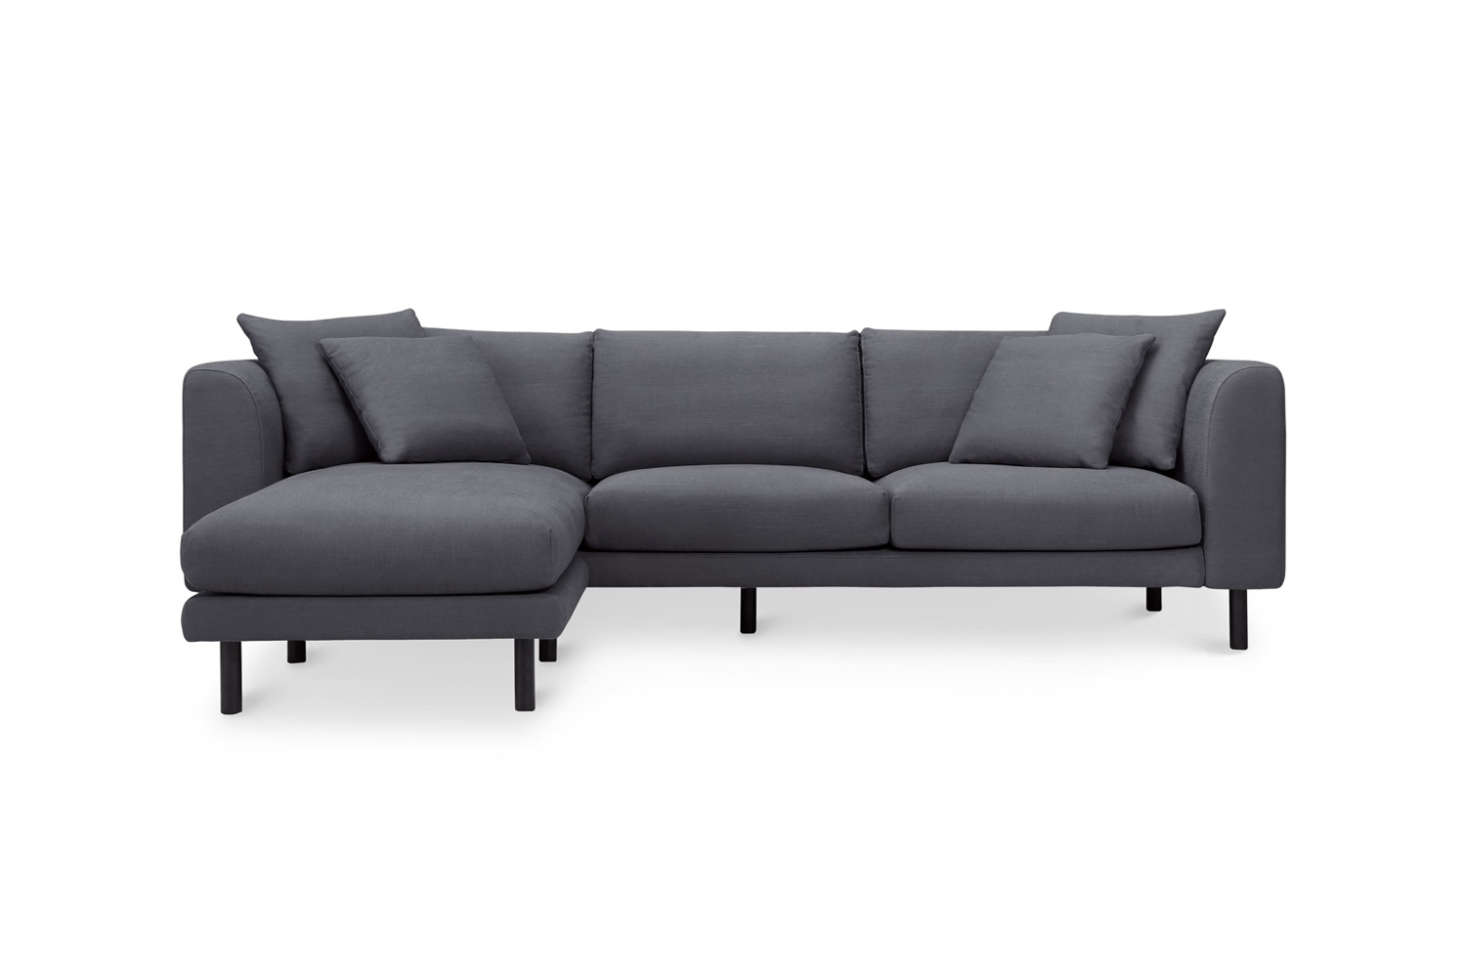 Astounding 10 Easy Pieces Sectional Chaise Sofas Remodelista Cjindustries Chair Design For Home Cjindustriesco